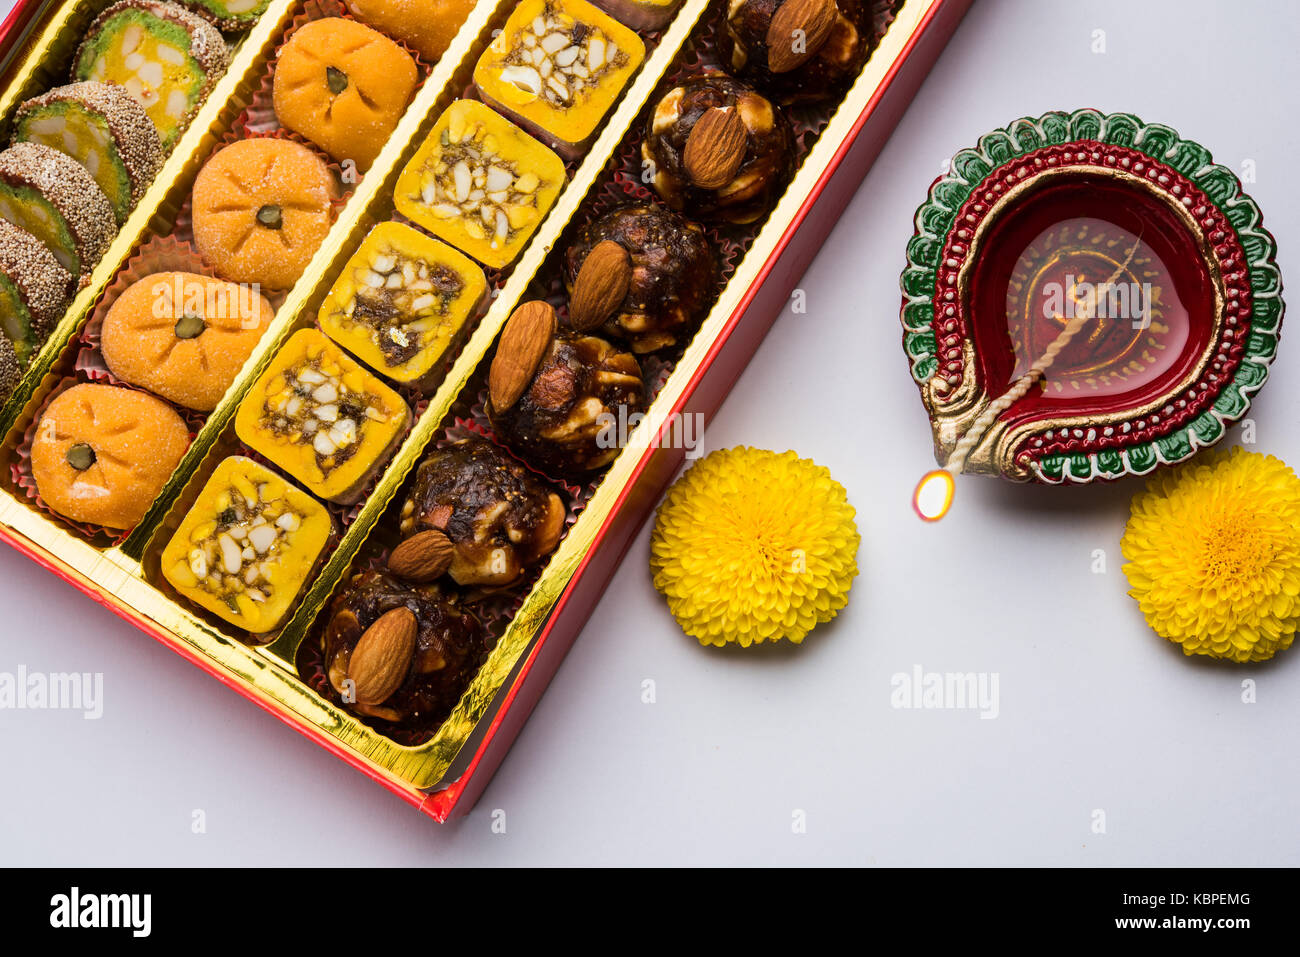 stock photo of Indian sweet or mithai and oil lamp or diya with gift box and flowers on decorative or colourful - Stock Image